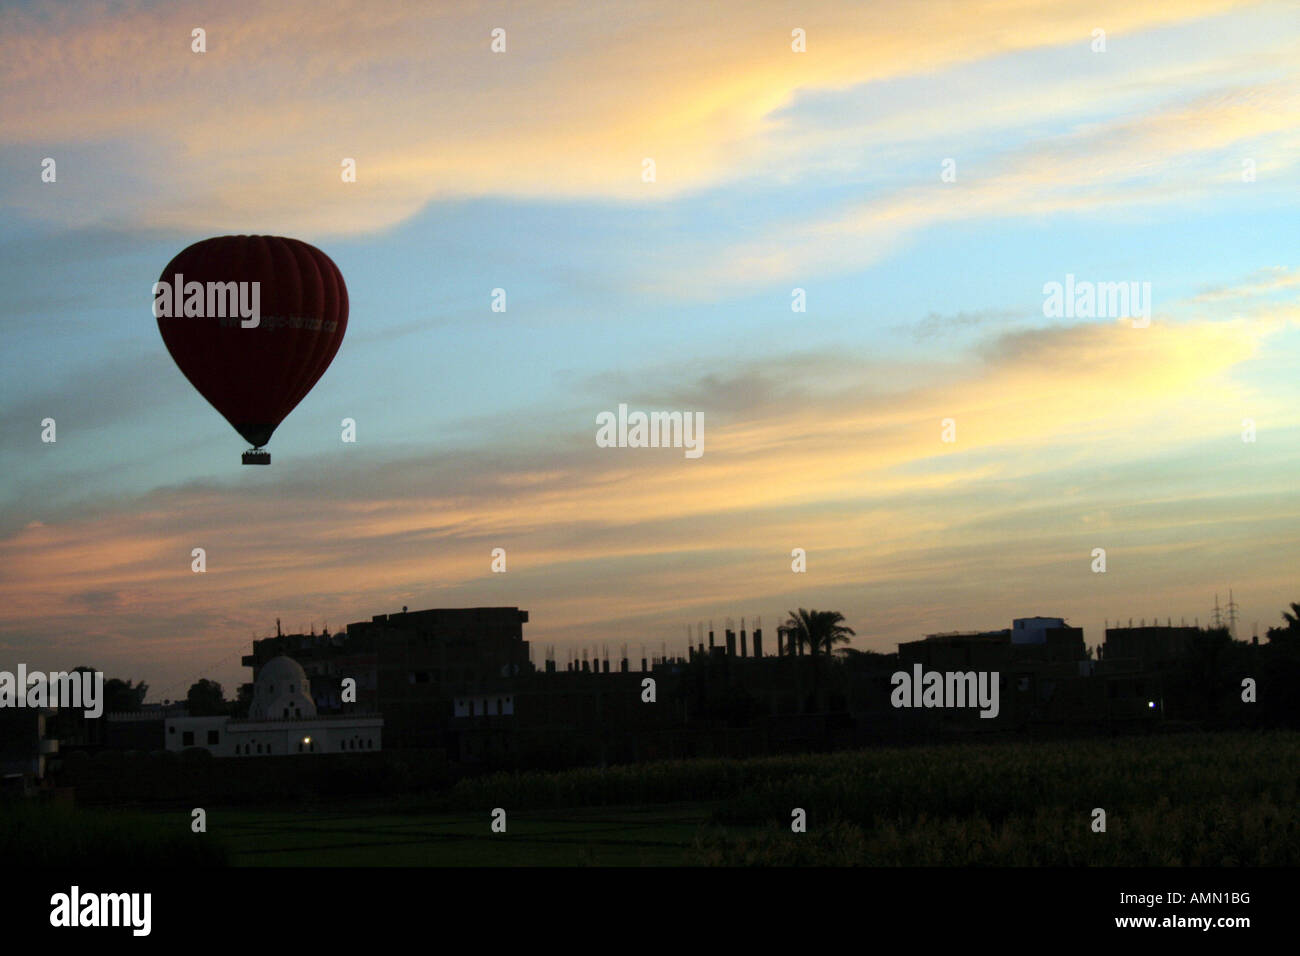 Hot Air Balloon Silhouetted in Front of Beautiful Sunrise [Near Luxor, Egypt, Arab States, Africa].             Stock Photo